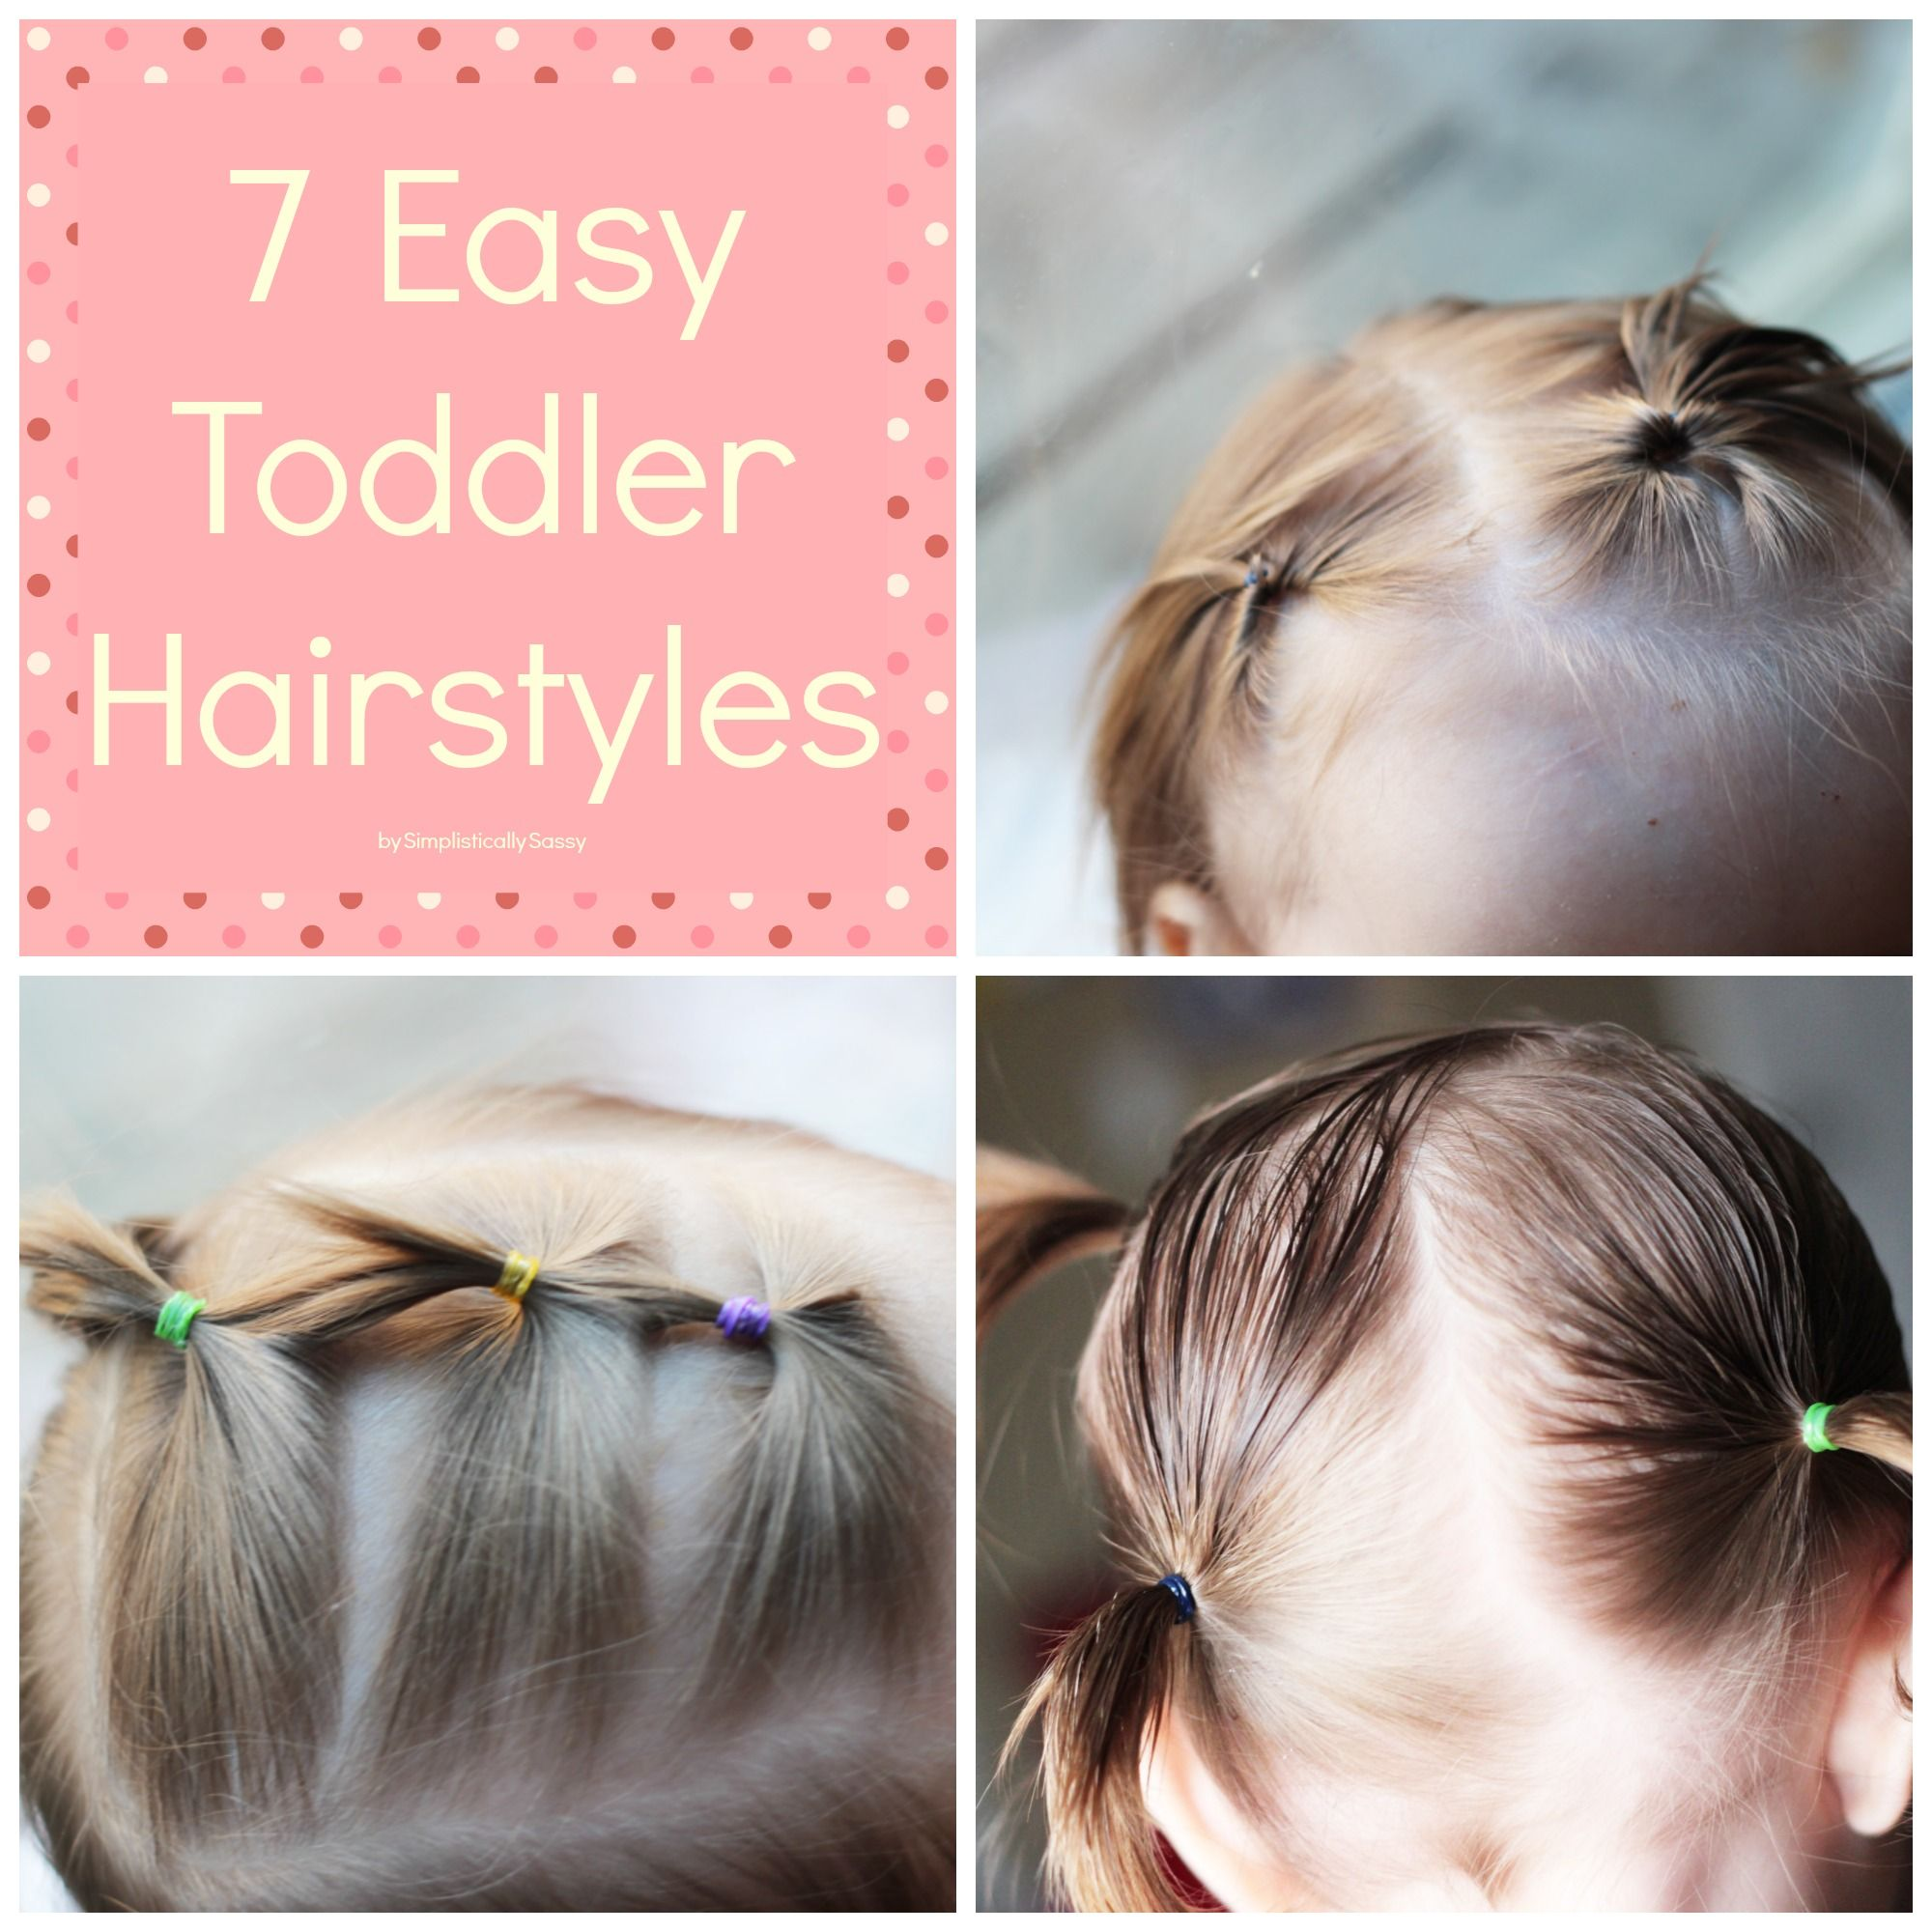 Cute haircuts for short hair - Simplistically Sassy Is Sharing 7 Quick And Easy Hairstyles For Your Busy Toddler So Grab That Spray Bottle Of Water A Comb A Few Elastics And Don T